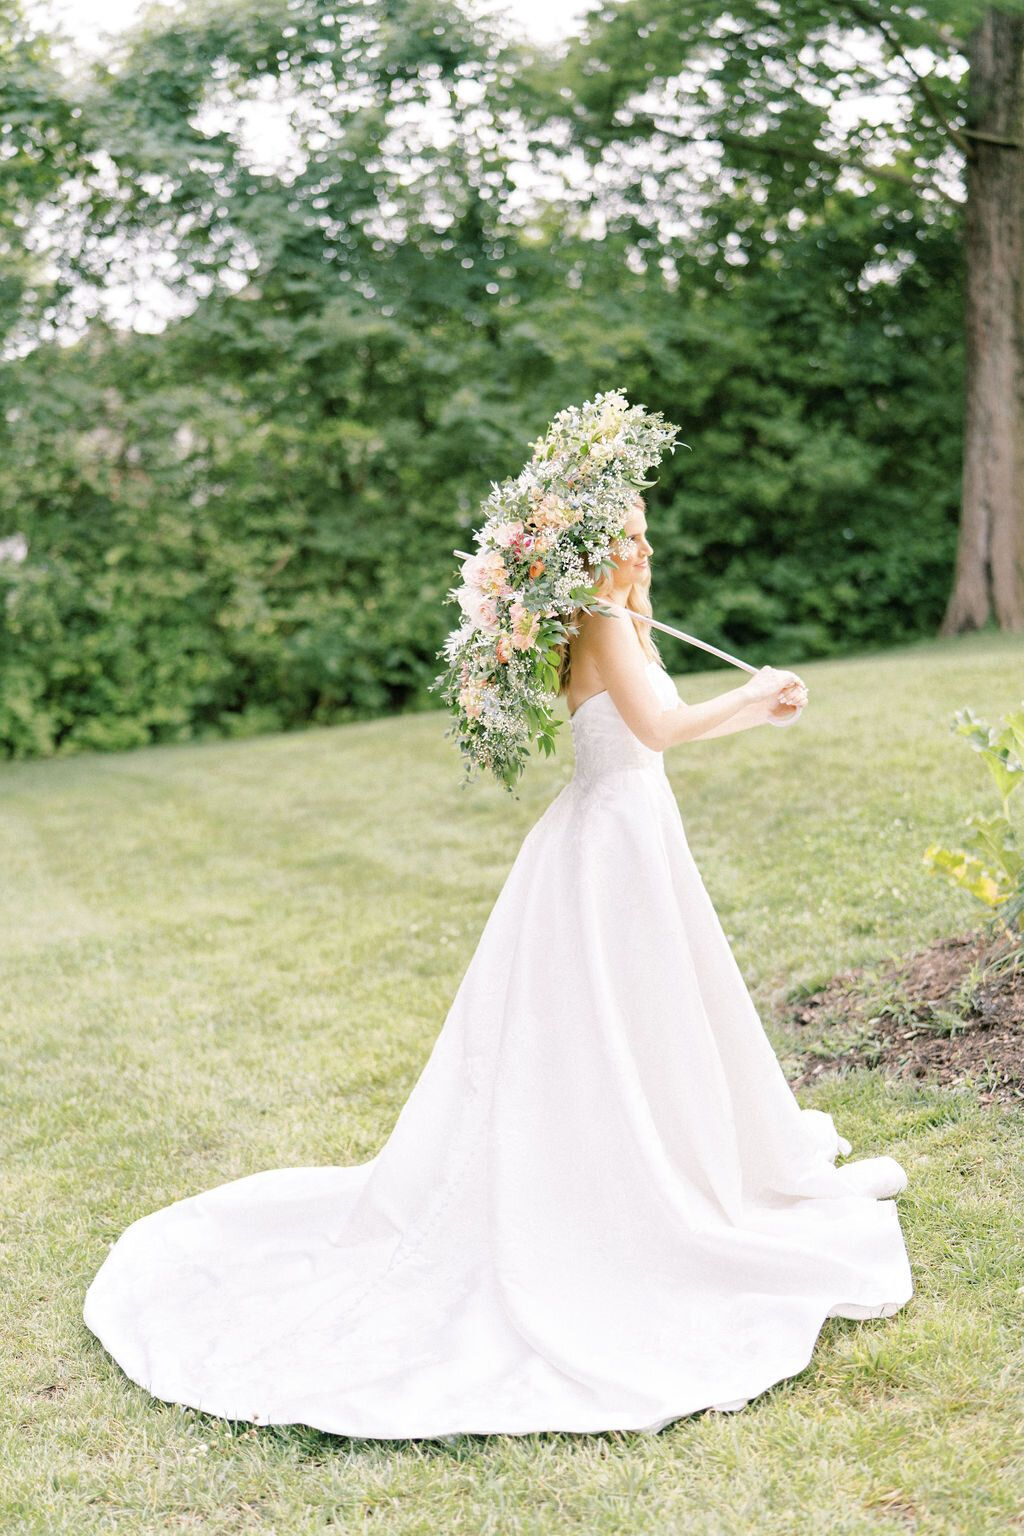 Summer Backyard Wedding Styled Shoot With Sarah Harvey White Traditions Bridal House Classic Wedding Dress Ball Gown Wedding Dress Outdoor Wedding Ceremony [ 1536 x 1024 Pixel ]